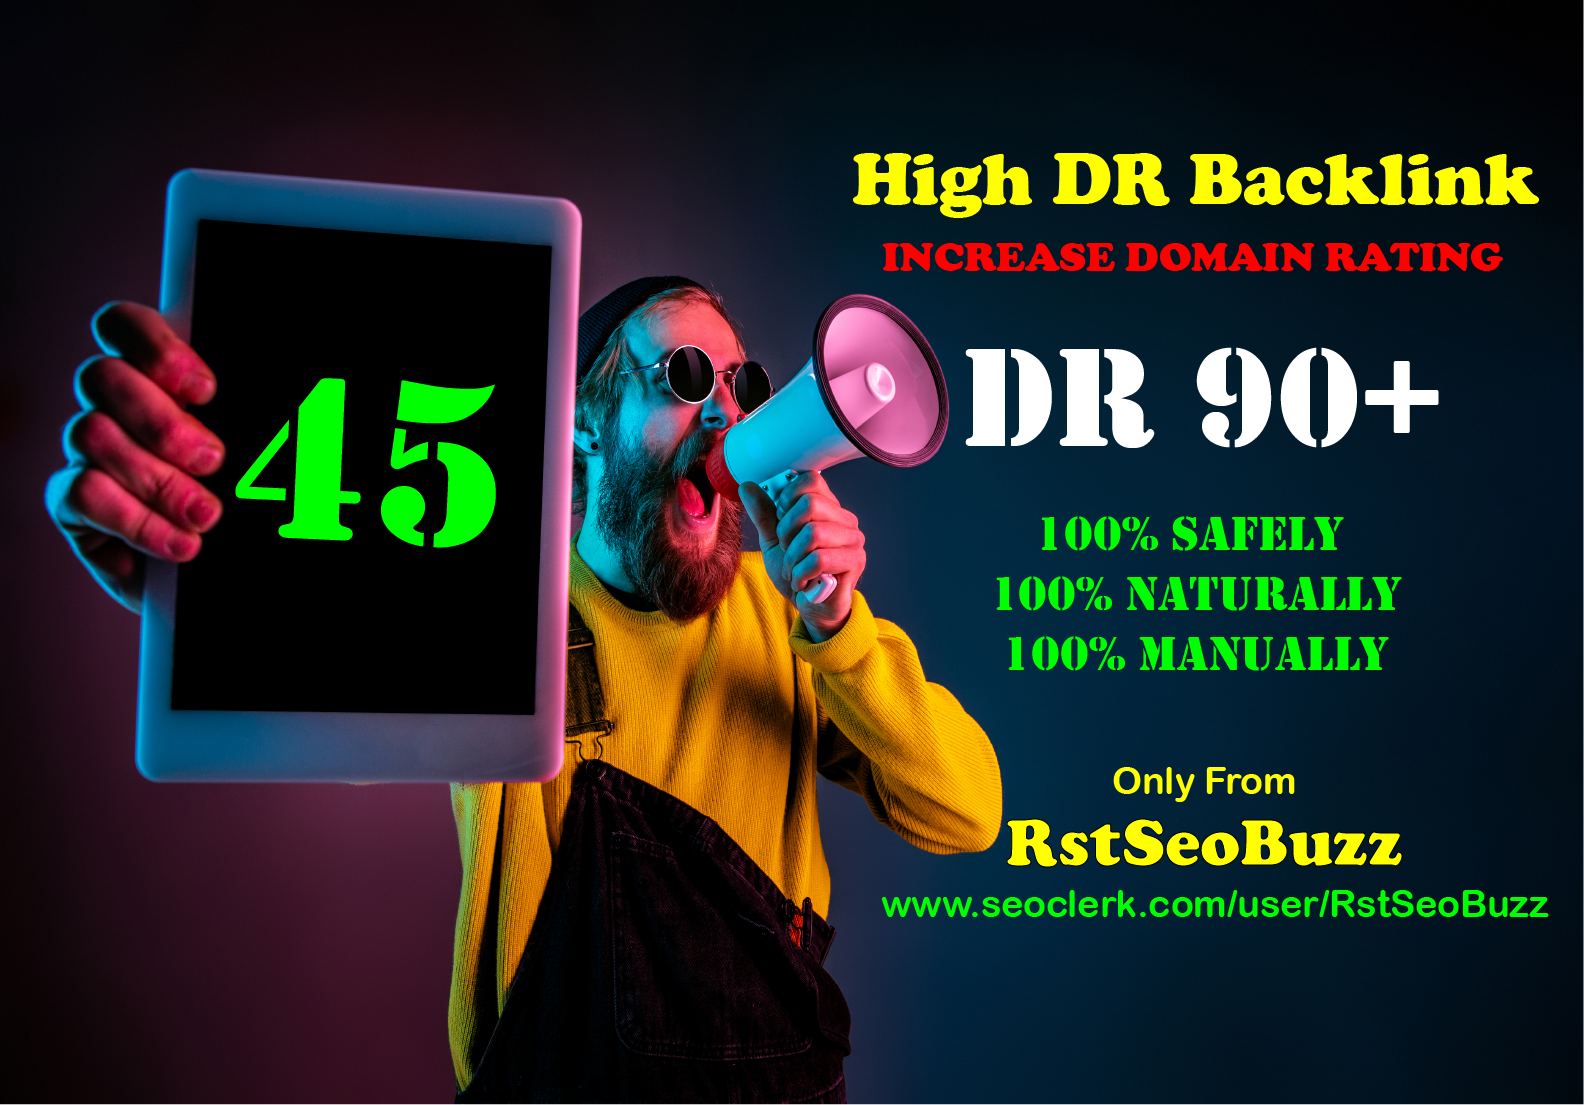 Authentic 45 DR90+ High DR SEO Backlinks to Increase Domain Rating 2021